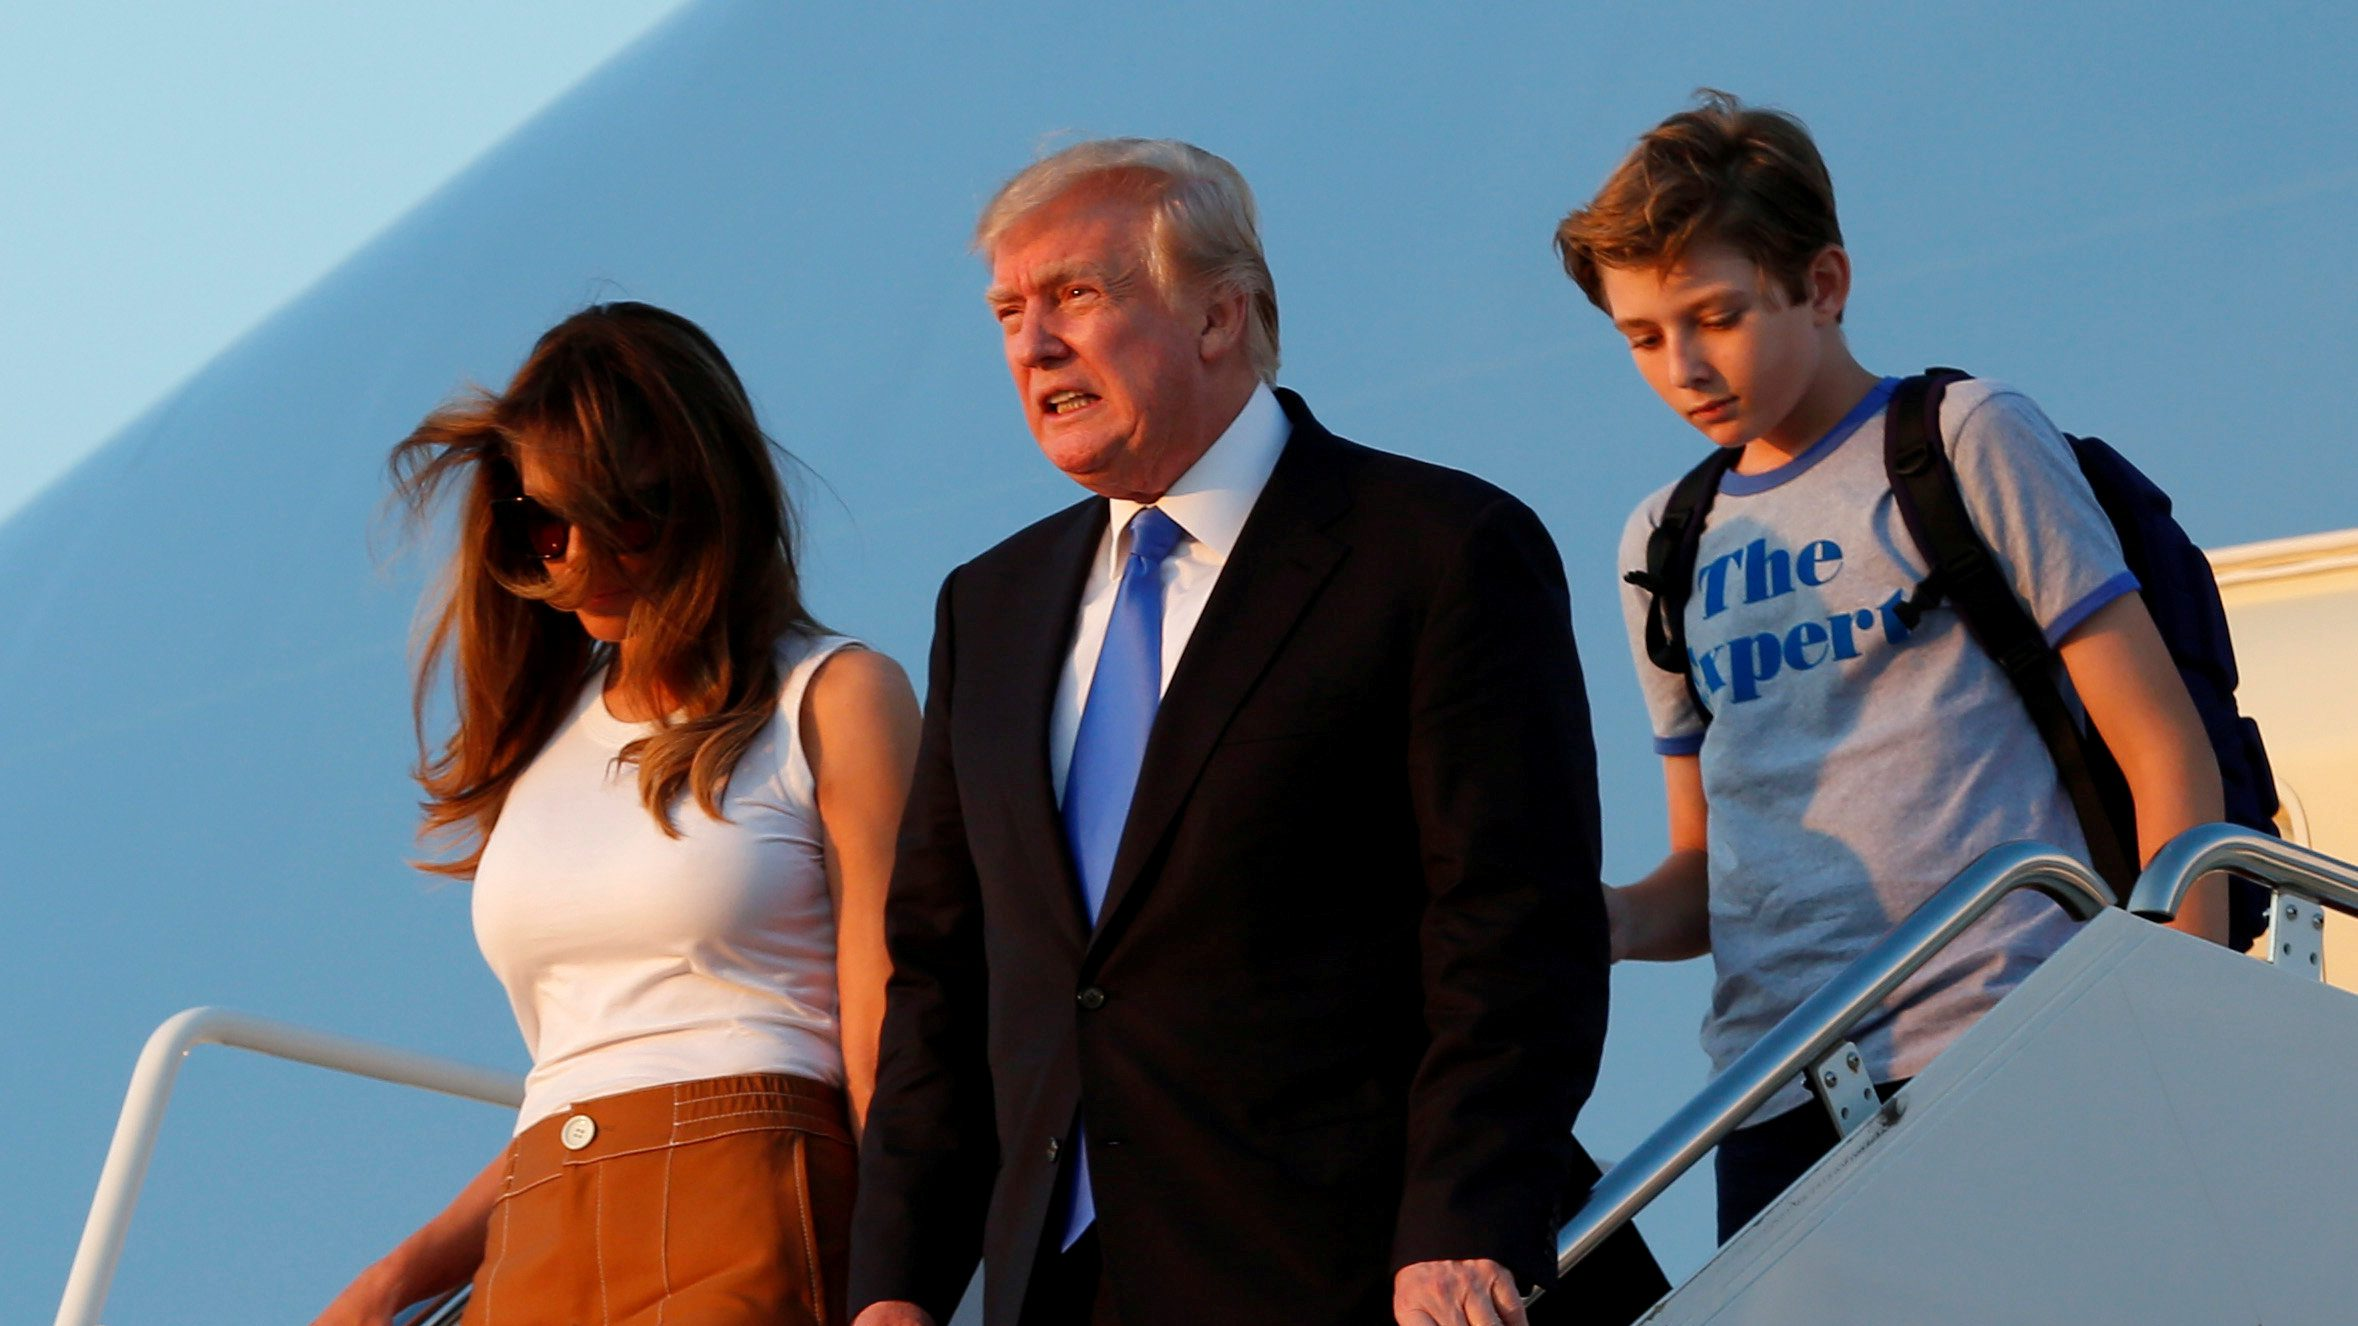 U.S. President Donald Trump with First Lady Melania Trump and their son Barron arrive at Joint Base Andrews outside Washington, U.S., after a weekend at Trump National Golf Club in Bedminster, New Jersey, U.S., June 11, 2017.